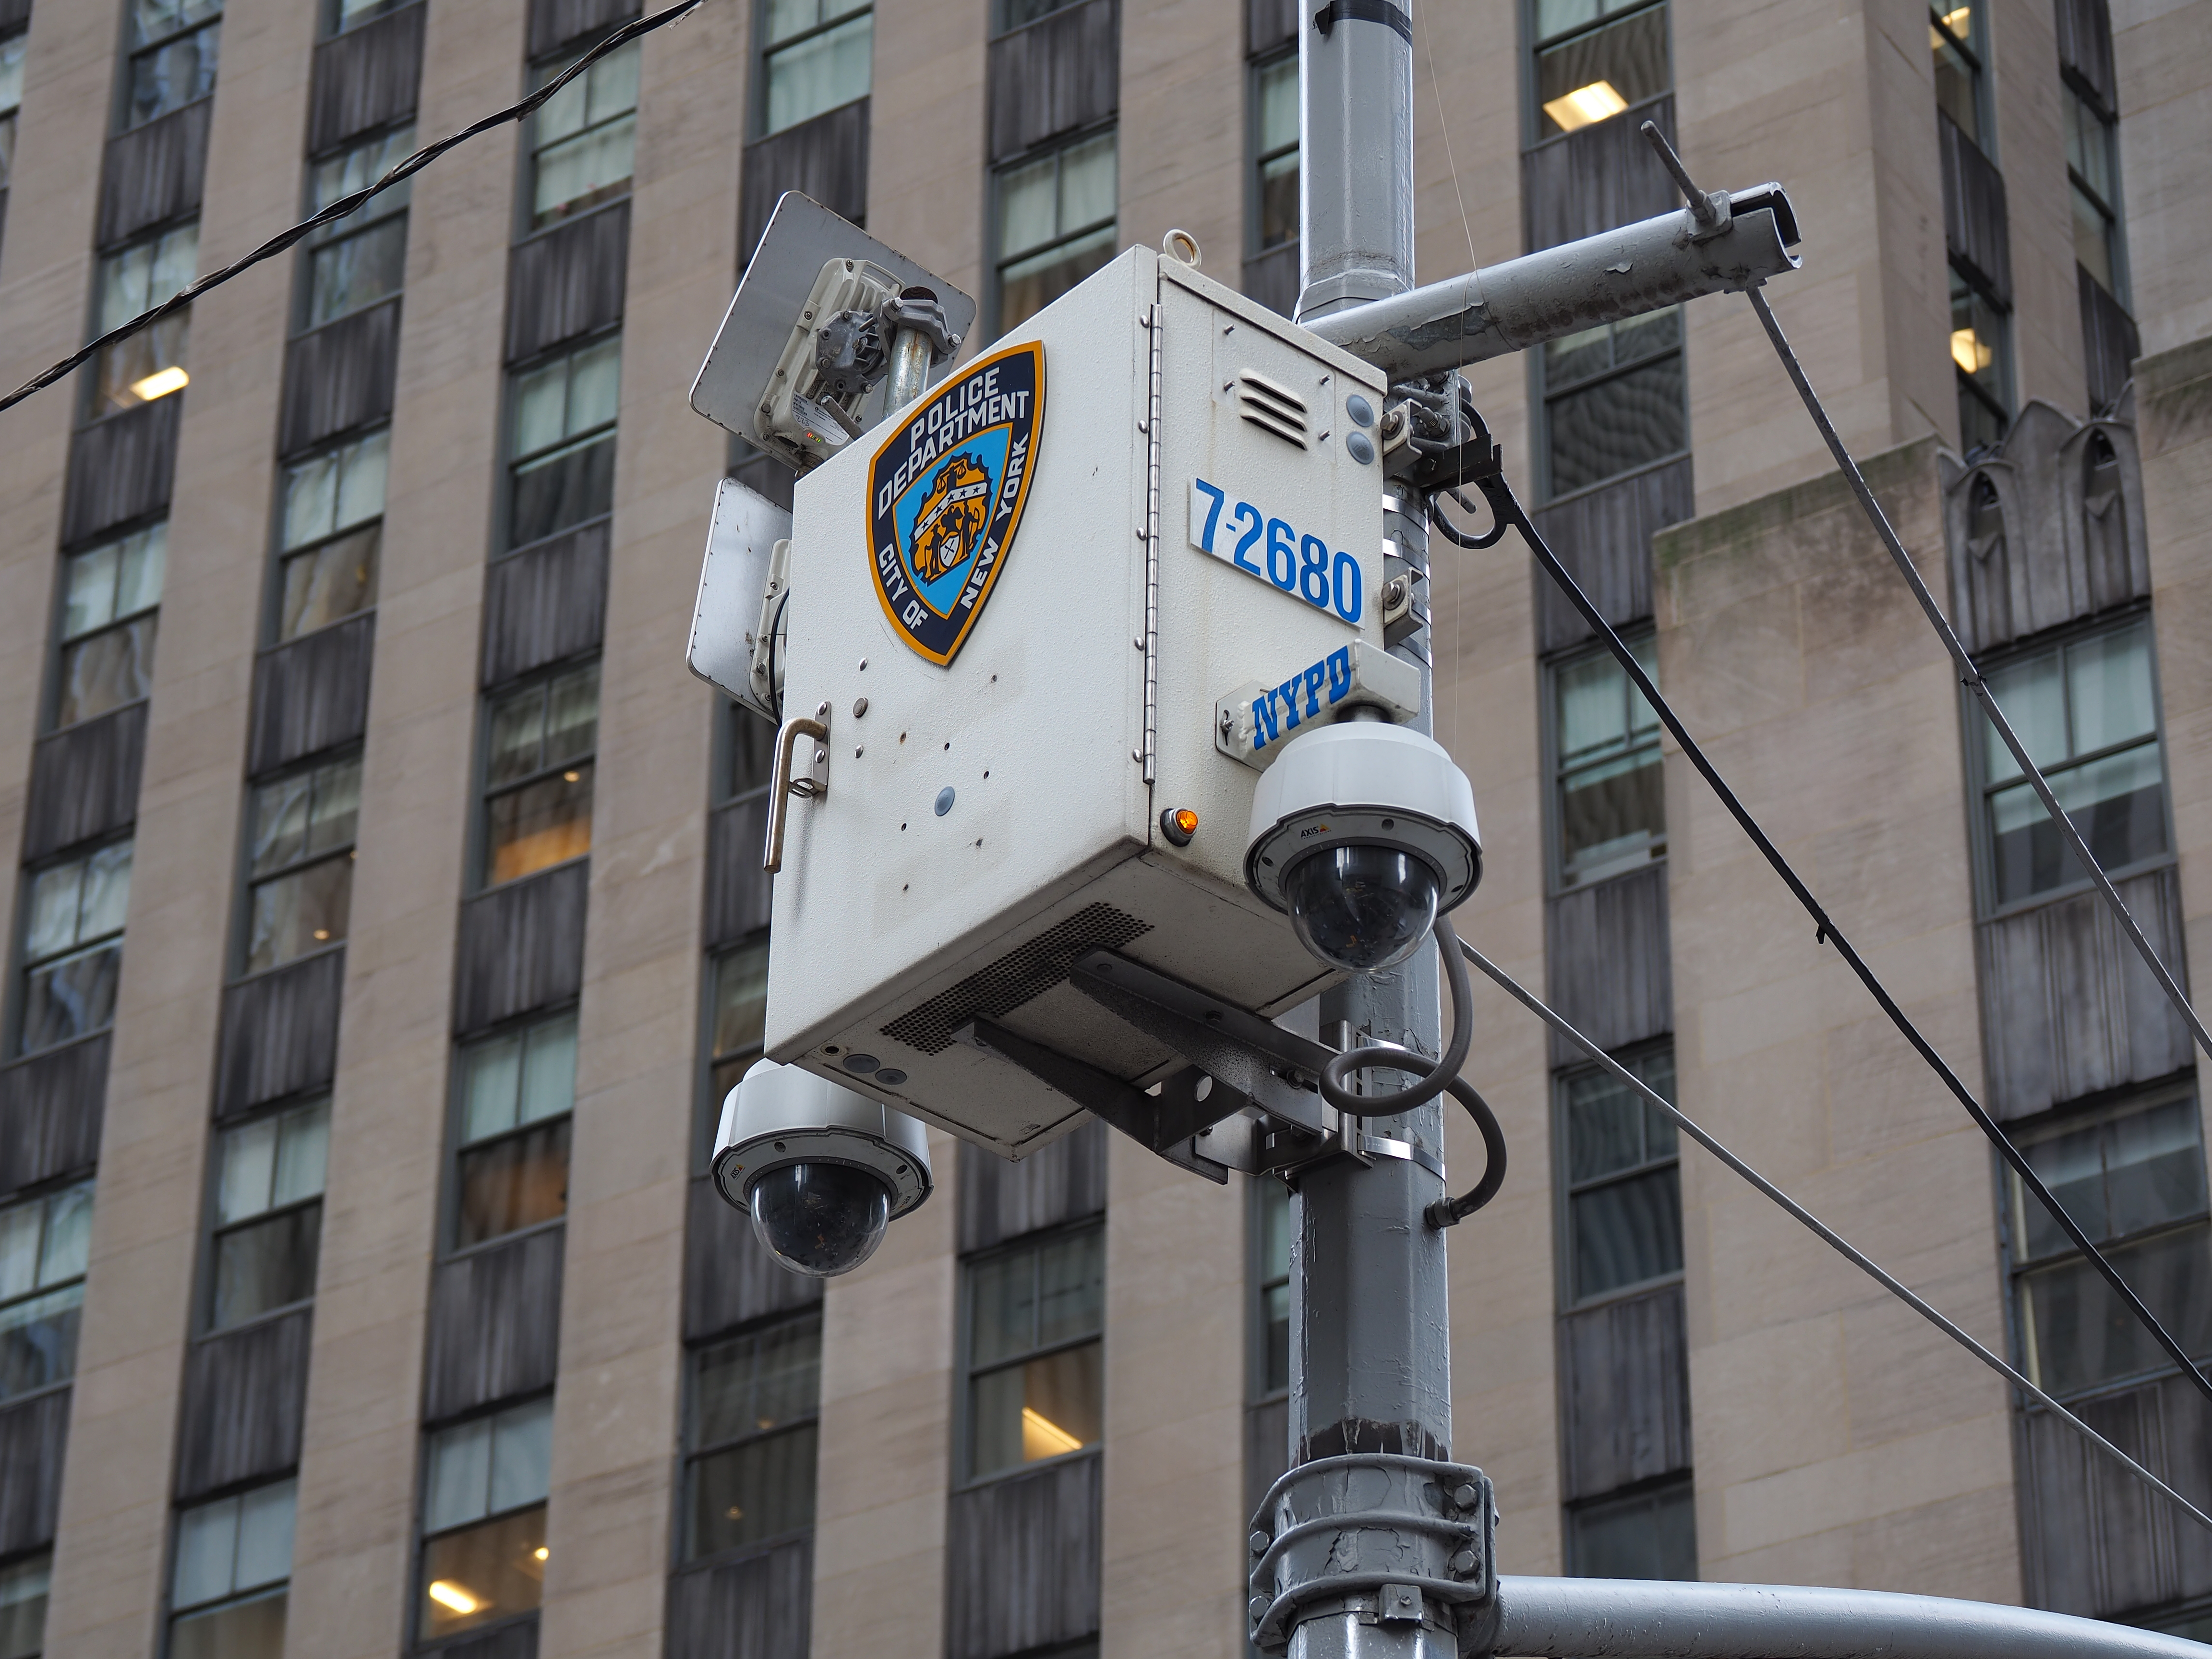 An NYPD surveillance camera - with multiple cameras and a white box that has an NYPD logo on it- on a pole near a tall office building